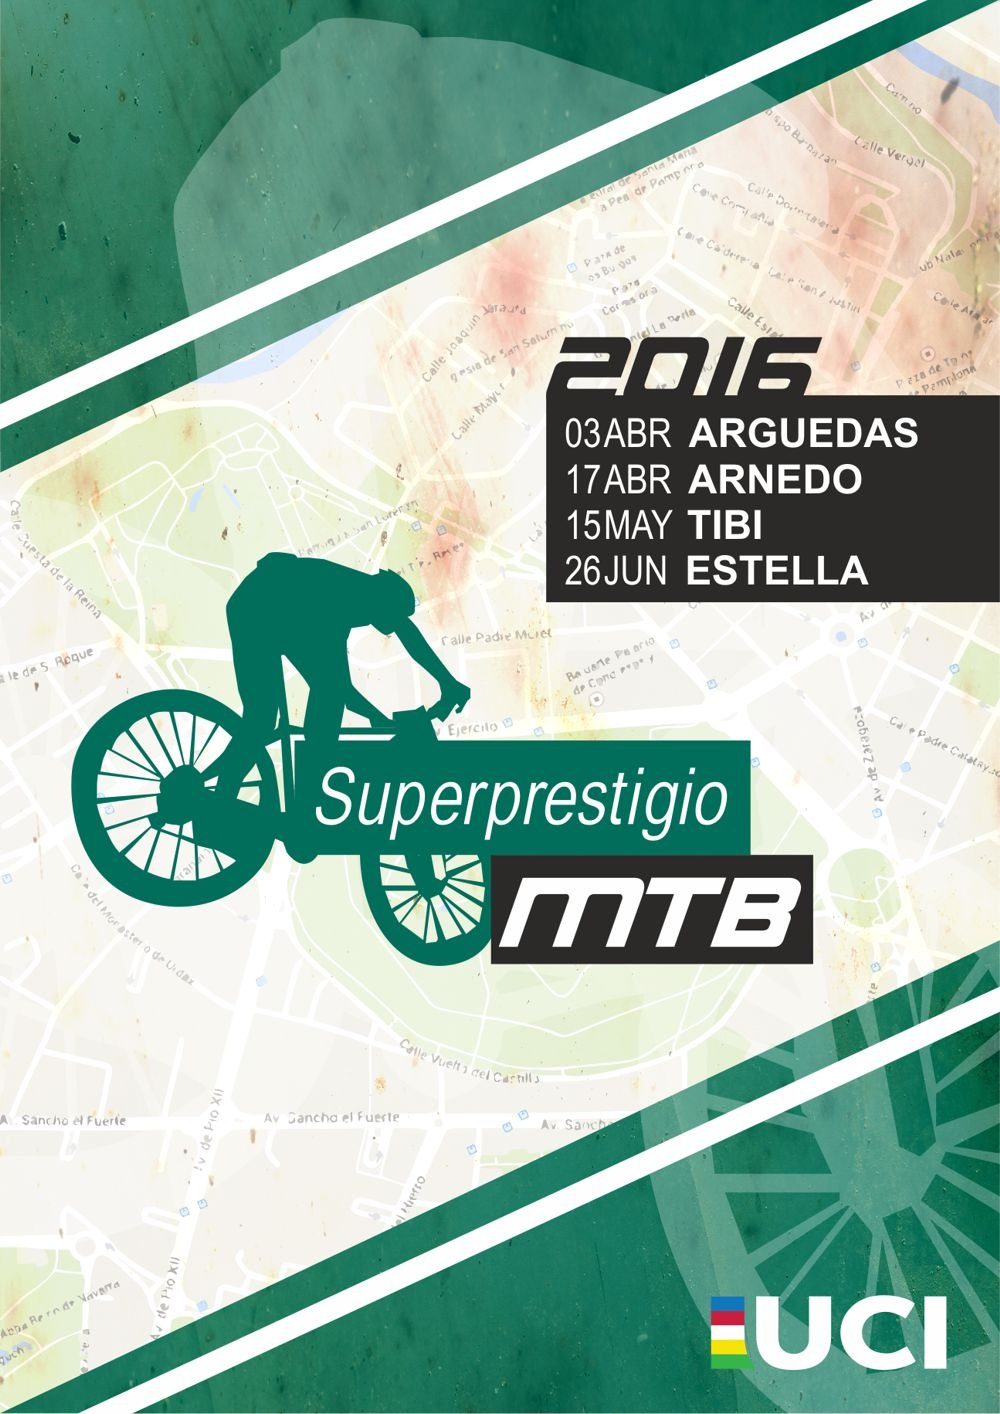 superprestigio